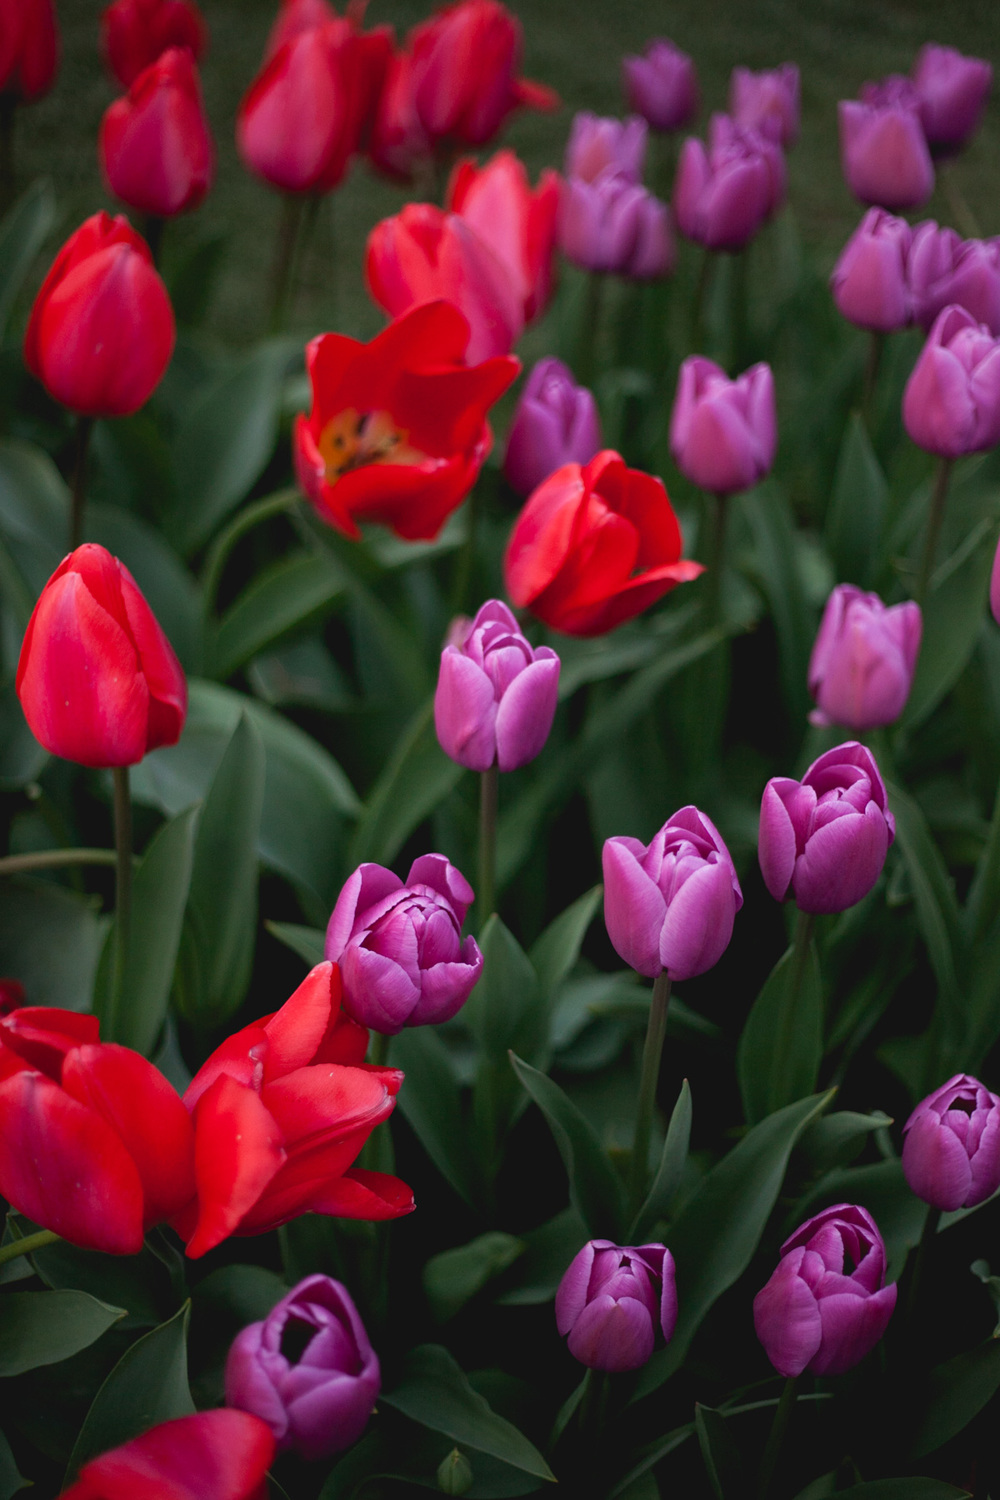 skagit-tulips-red-purple_annette-rotz.jpg